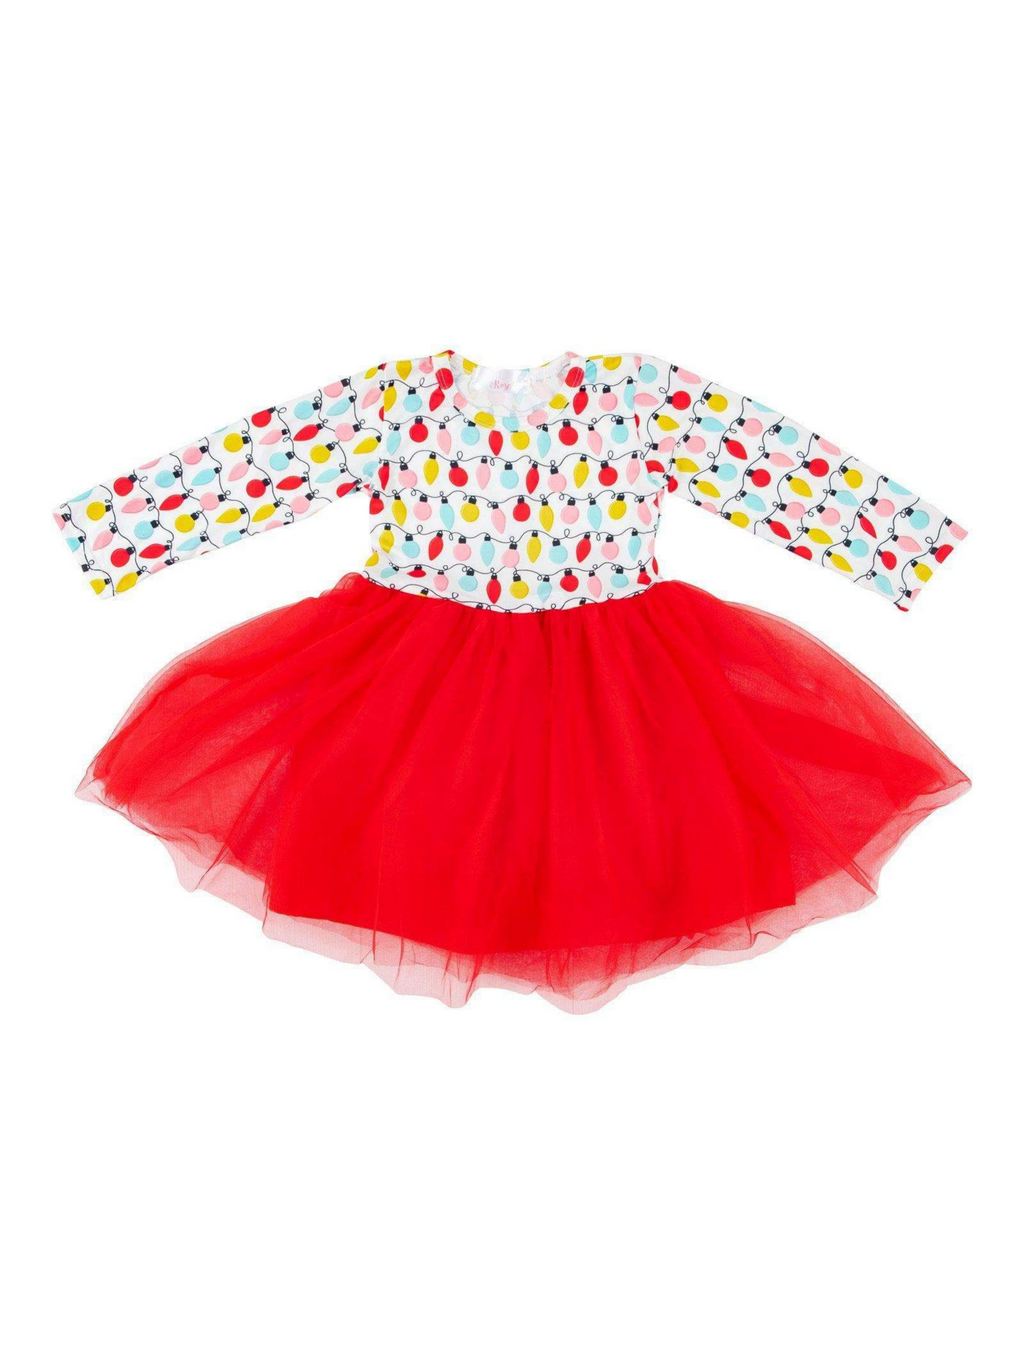 Merry & Bright Tutu Dress